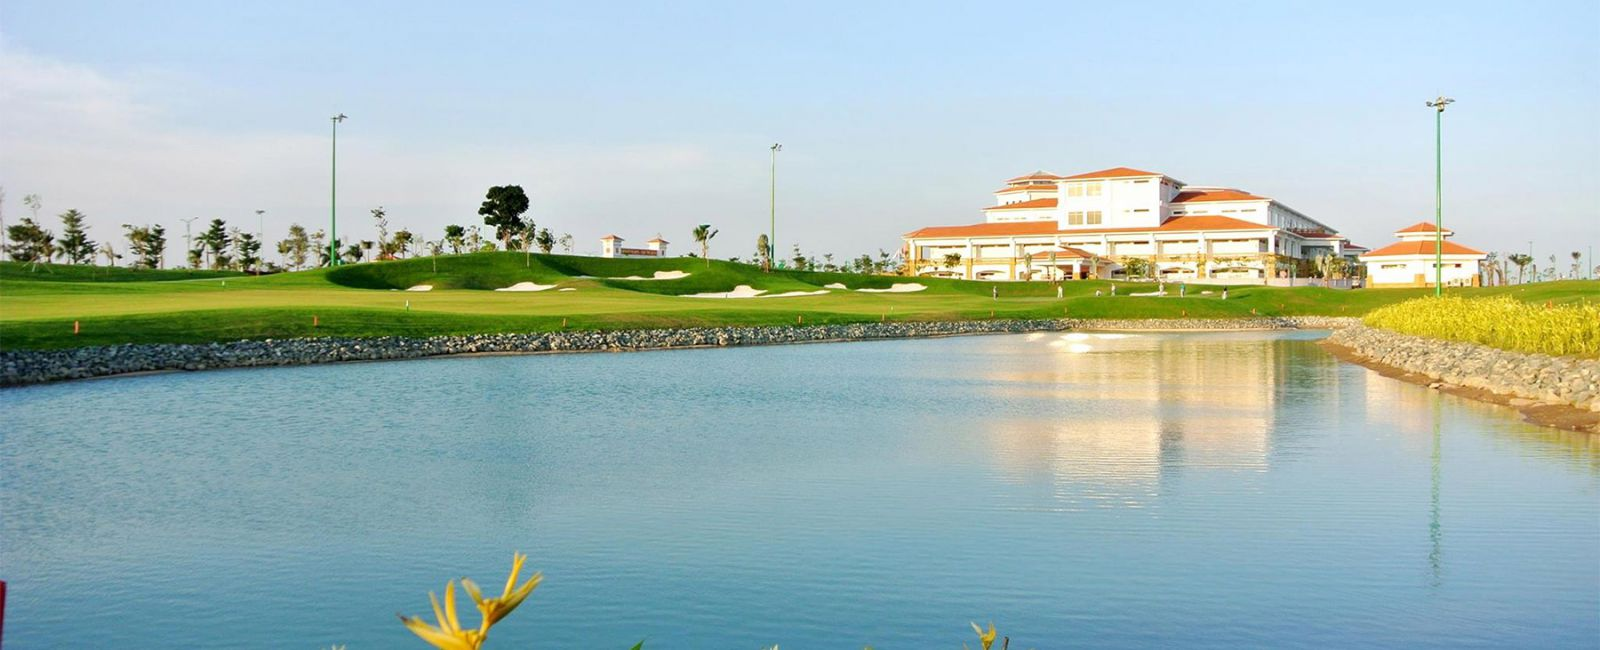 Tan Son Nhat Golf Club